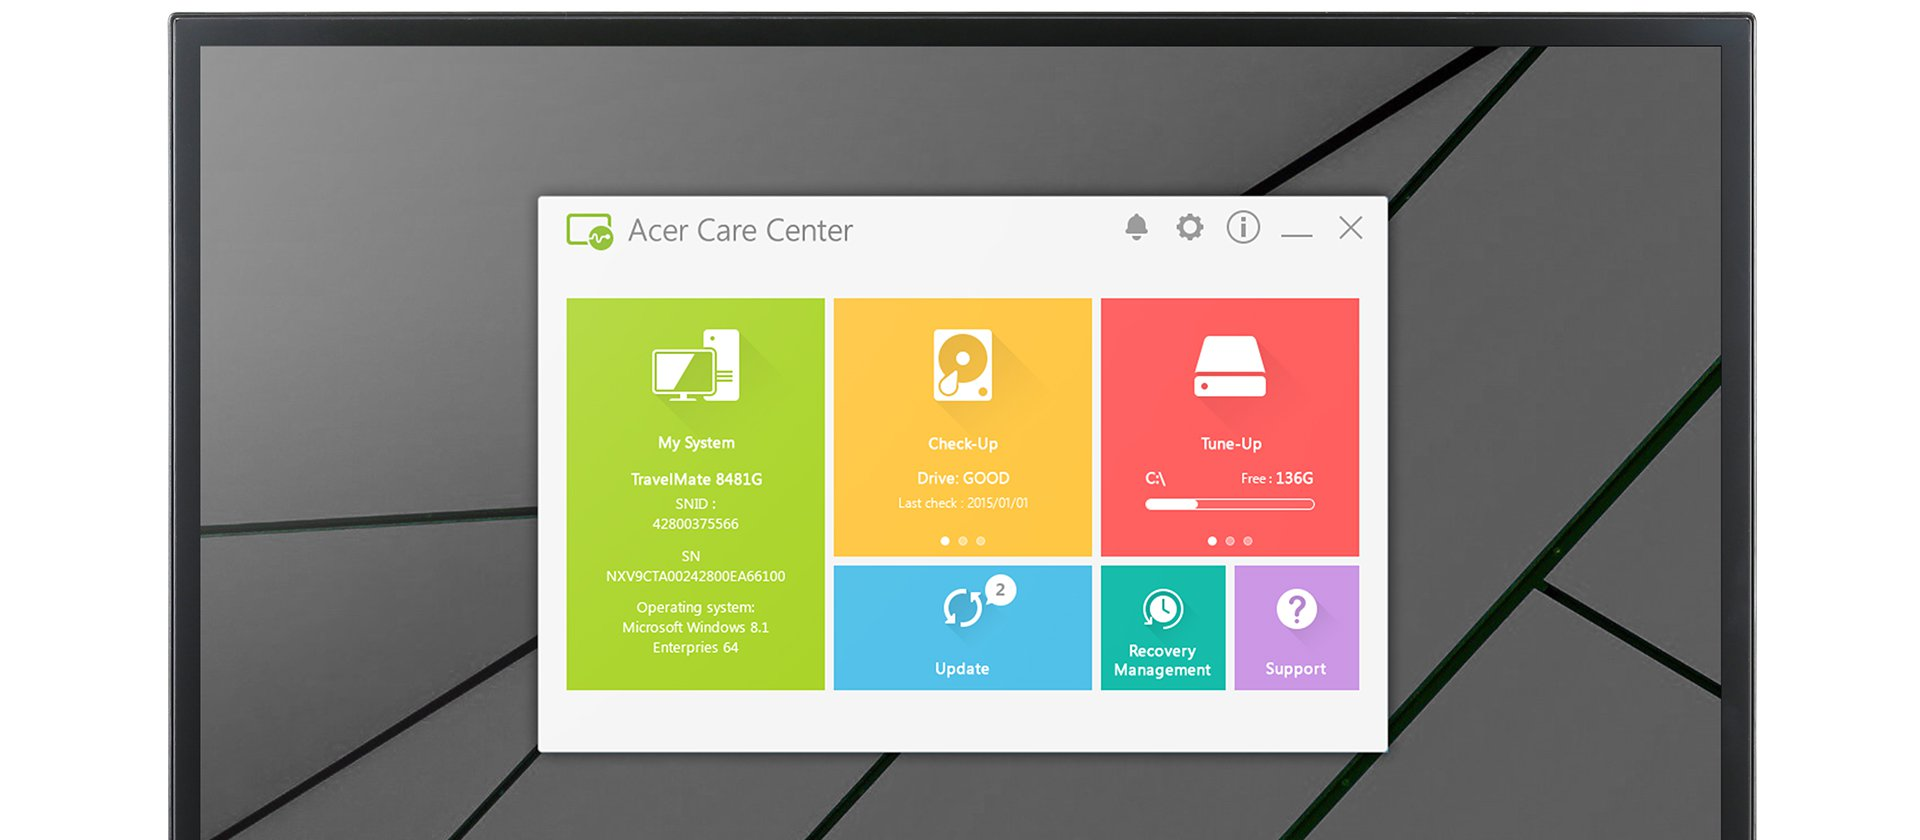 Vista Acer Care Center de Aspire ATC de venta en Tienda Intercompras